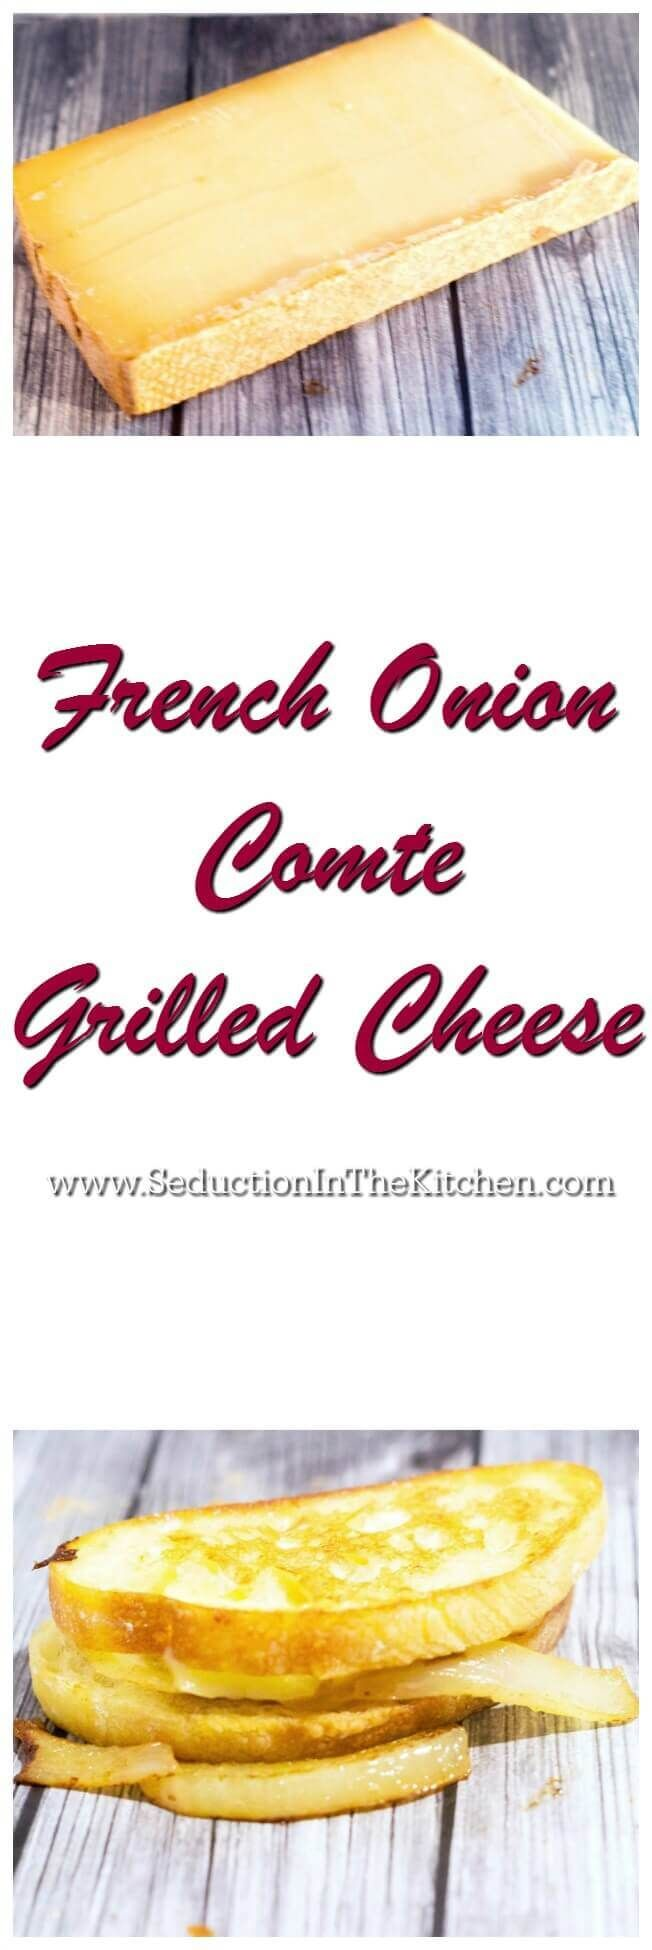 French Onion Comte Grilled Cheese was created for #NationalGrilledCheeseDay. This sandwich was inspired by French Onion Soup. #Comte is perfect for this cheesy sandwich! #makeitmagnifique via @SeductionRecipe